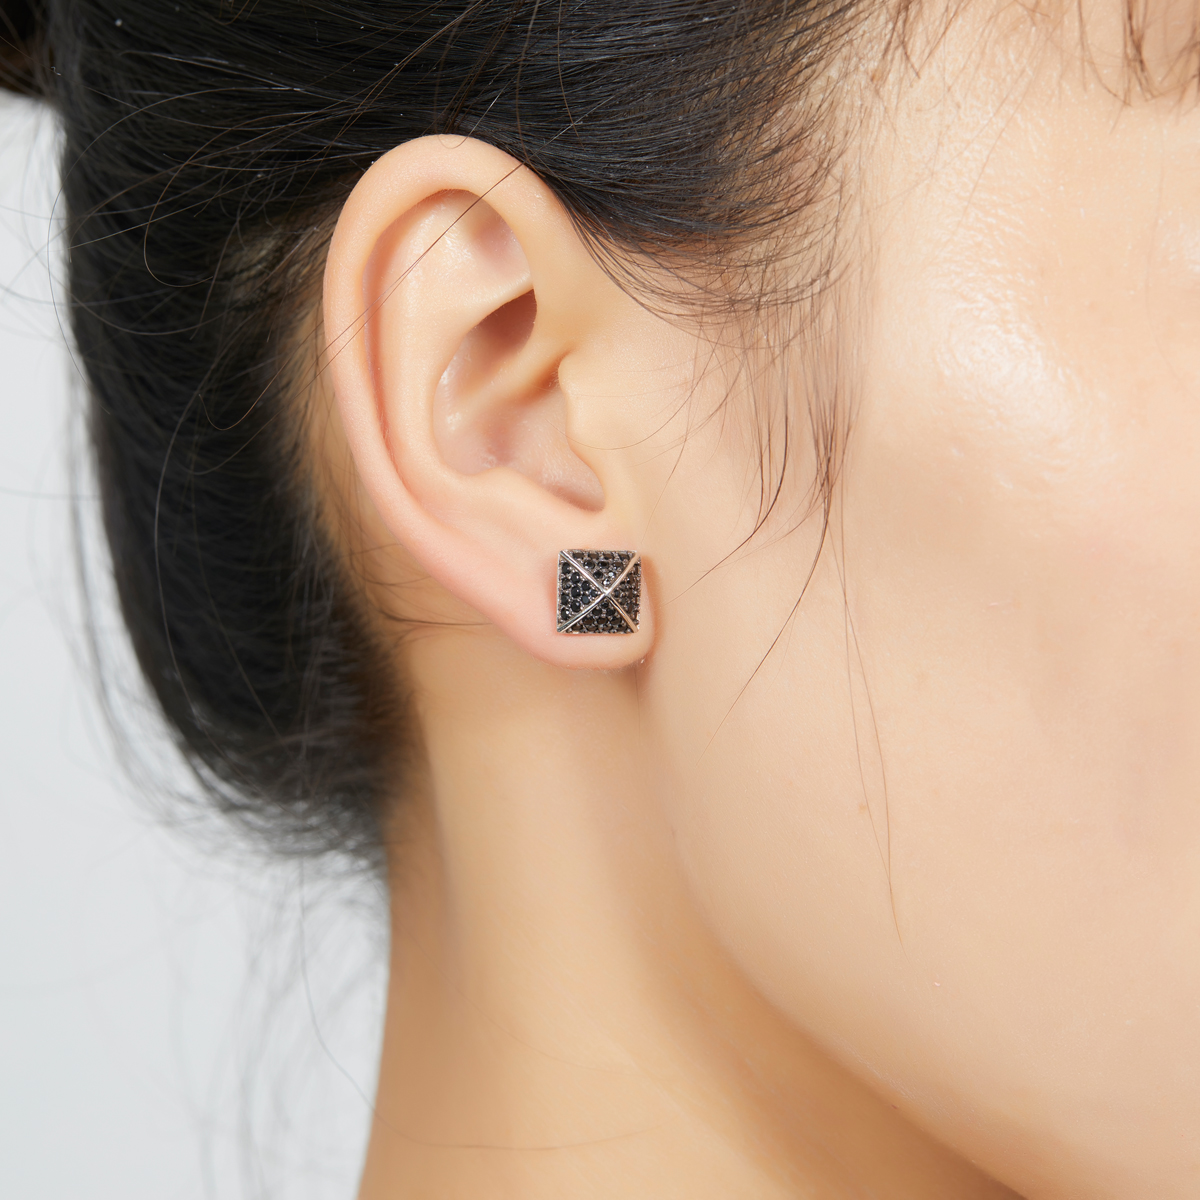 Hutang Natural Black Spinel Stud Earrings Solid 925 Sterling Silver Pyramid Design Jewelry For Women Best Gift